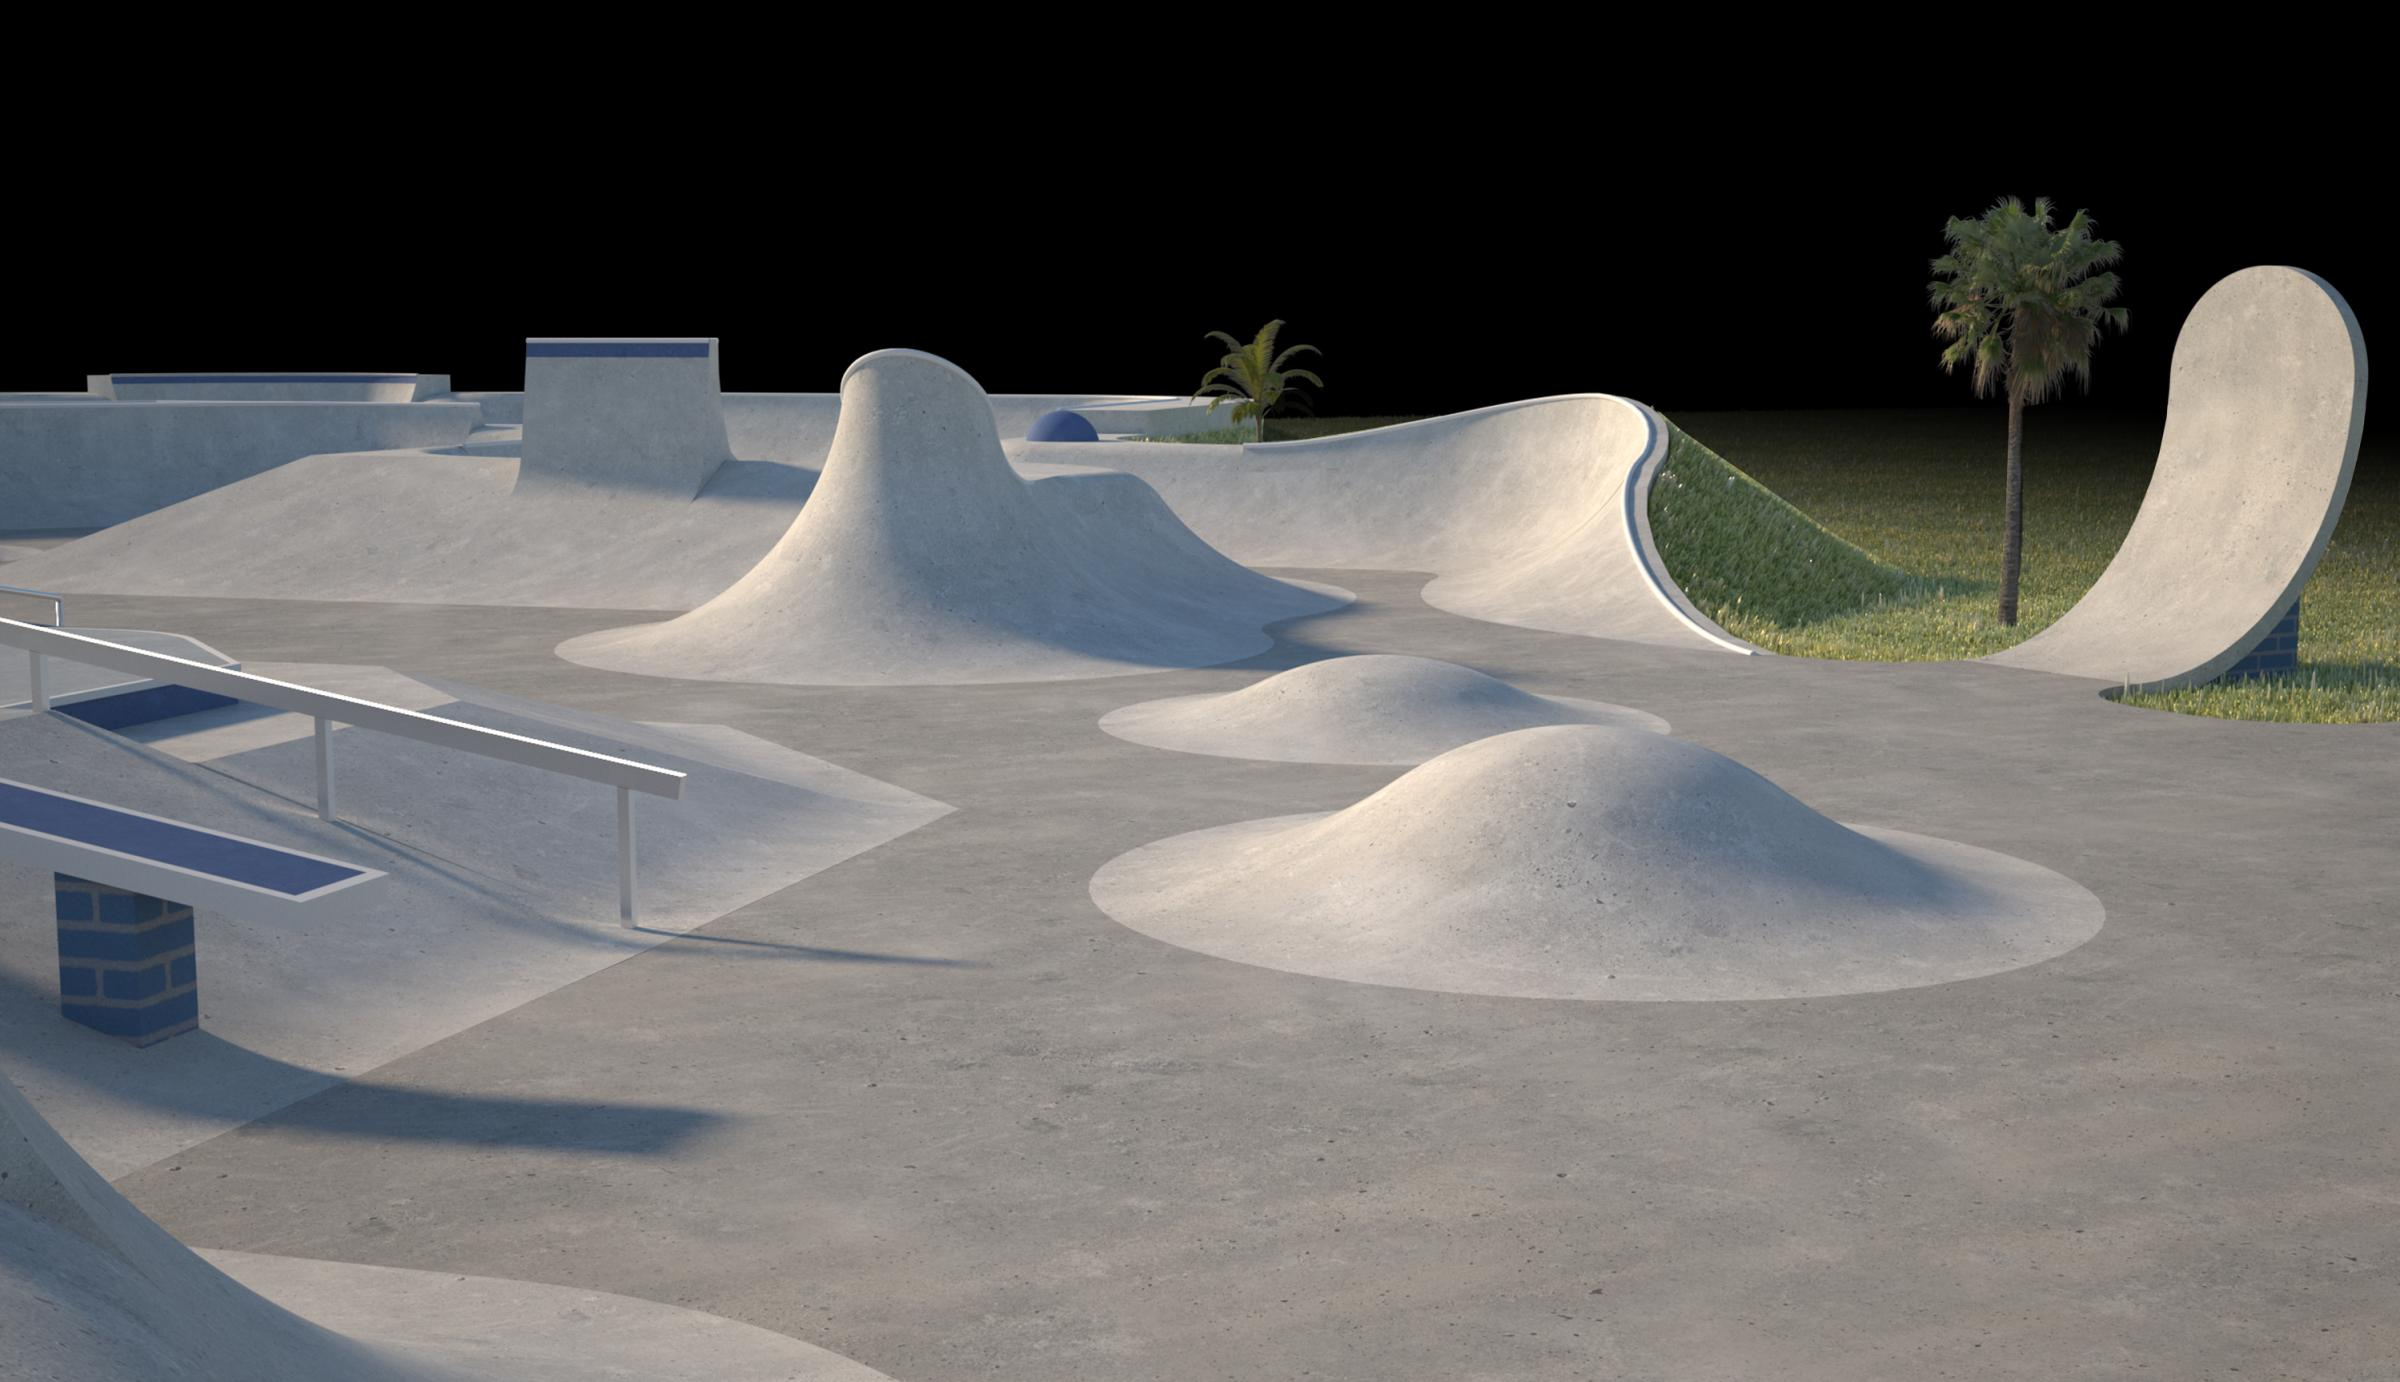 An artist's impression of a section of the Falmouth Skatepark